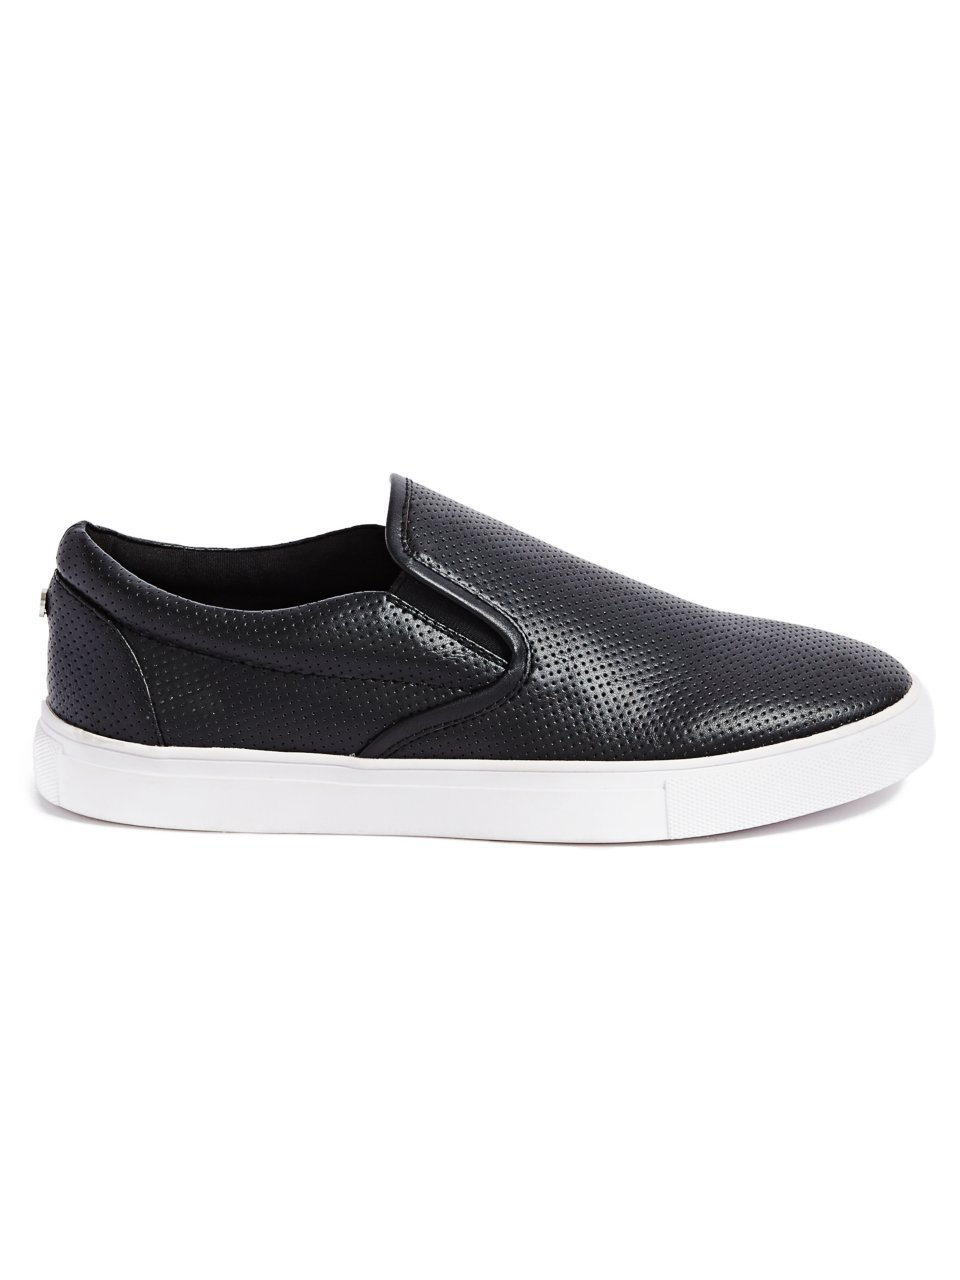 g by guess s chad slip on sneakers ebay